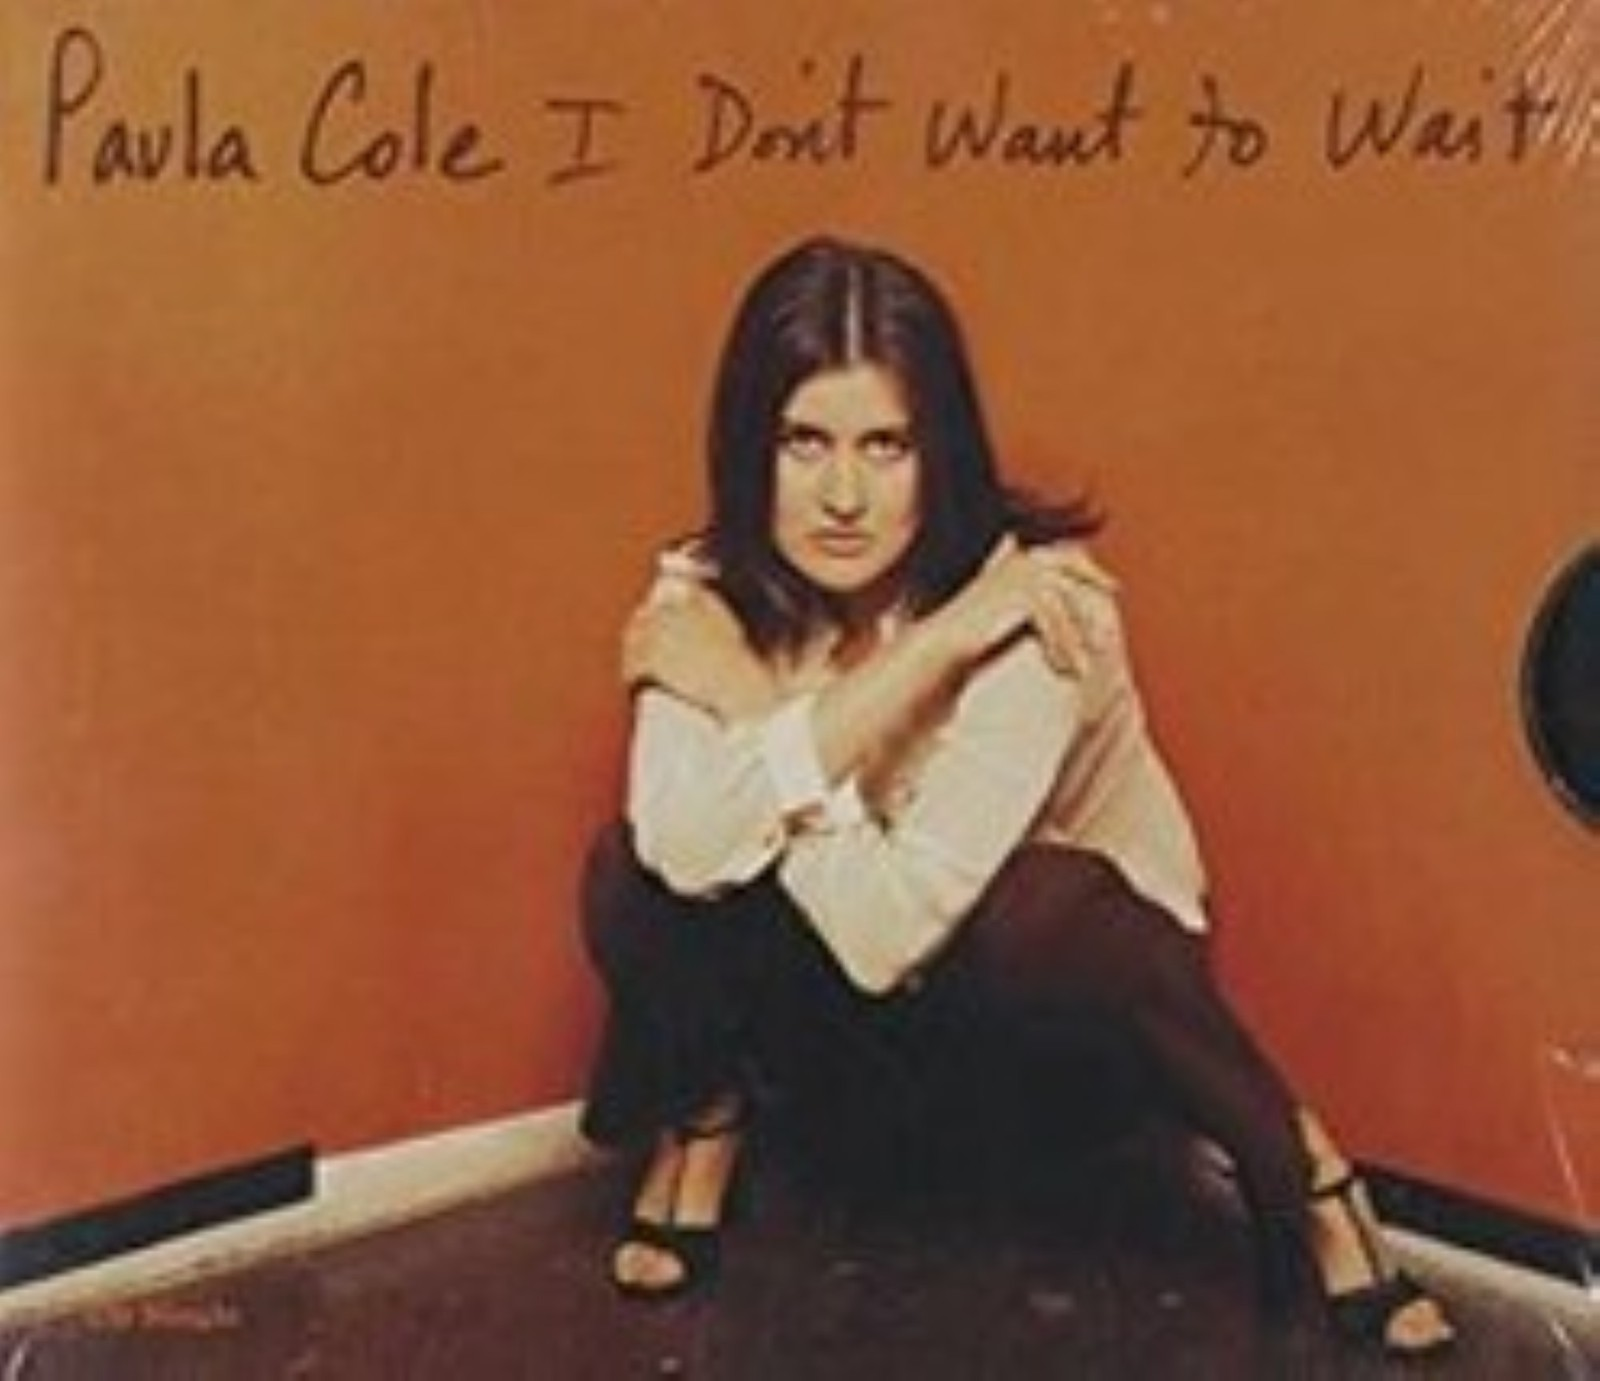 I Don't Want to Wait / Hitler's Brothers by Cole, Paula Cd